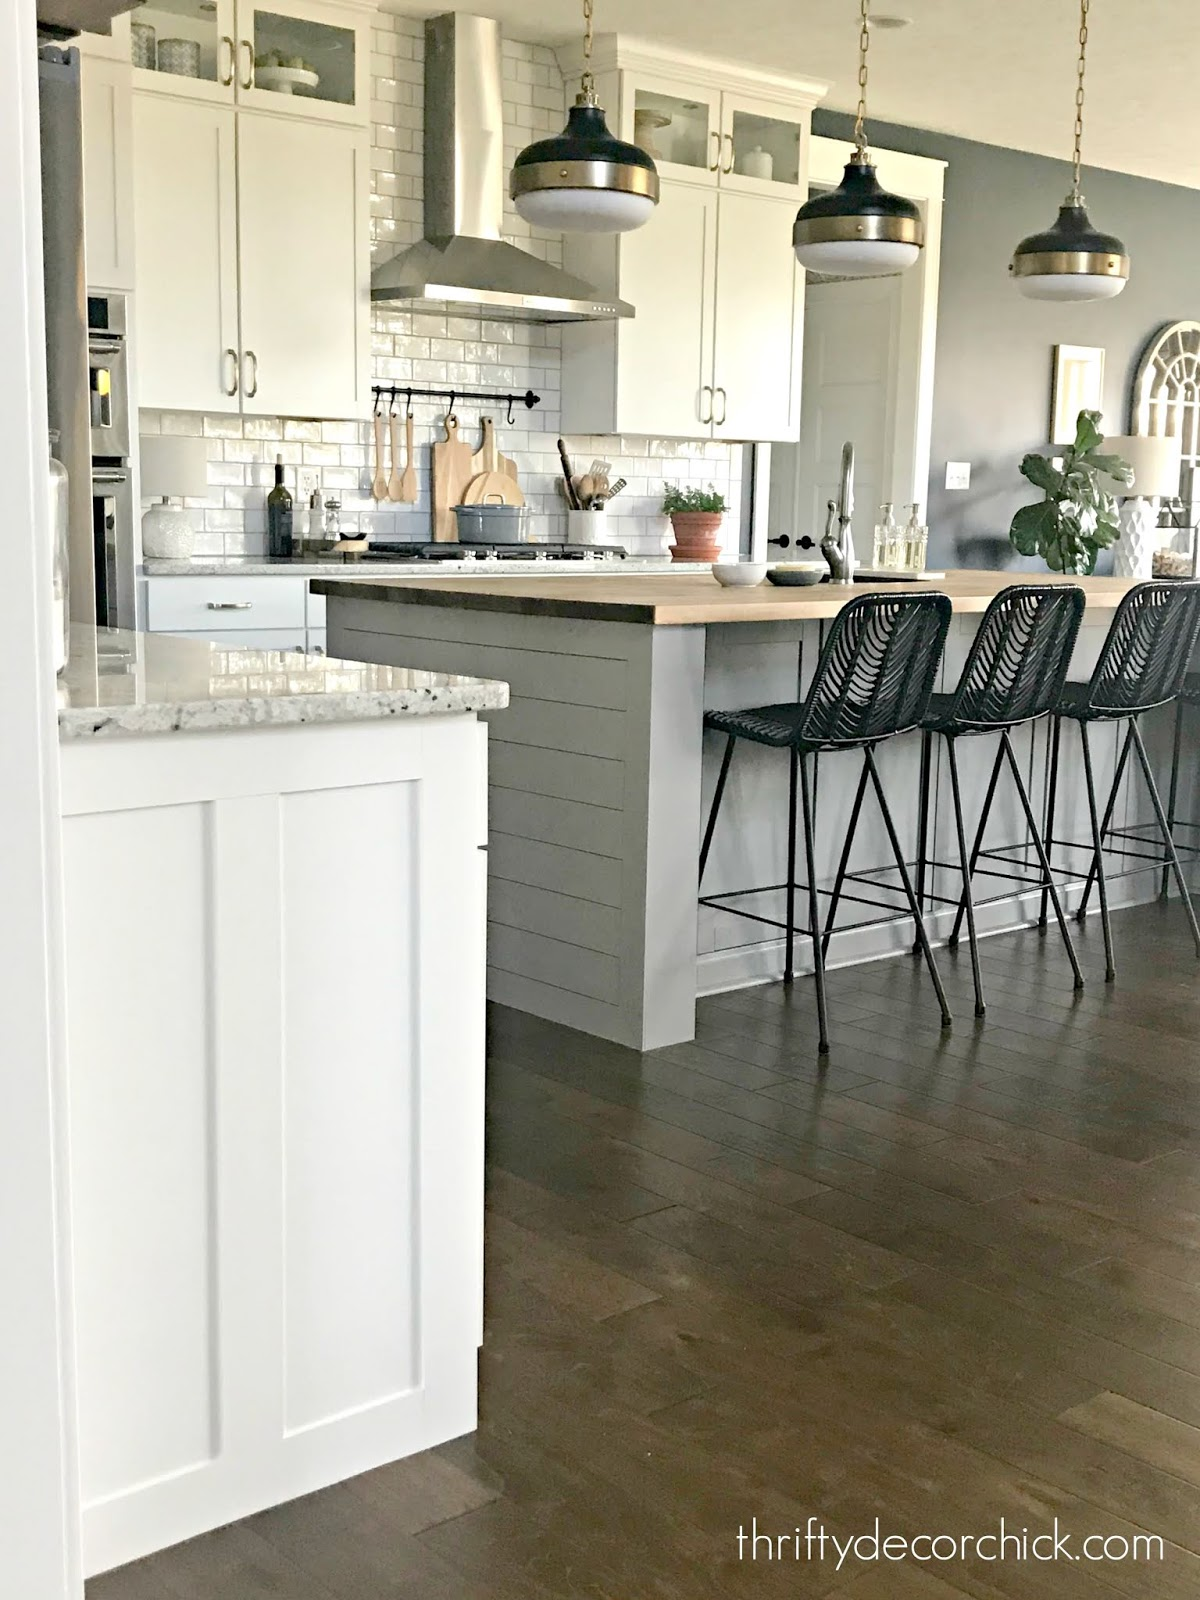 Light gray island, black stools, white kitchen